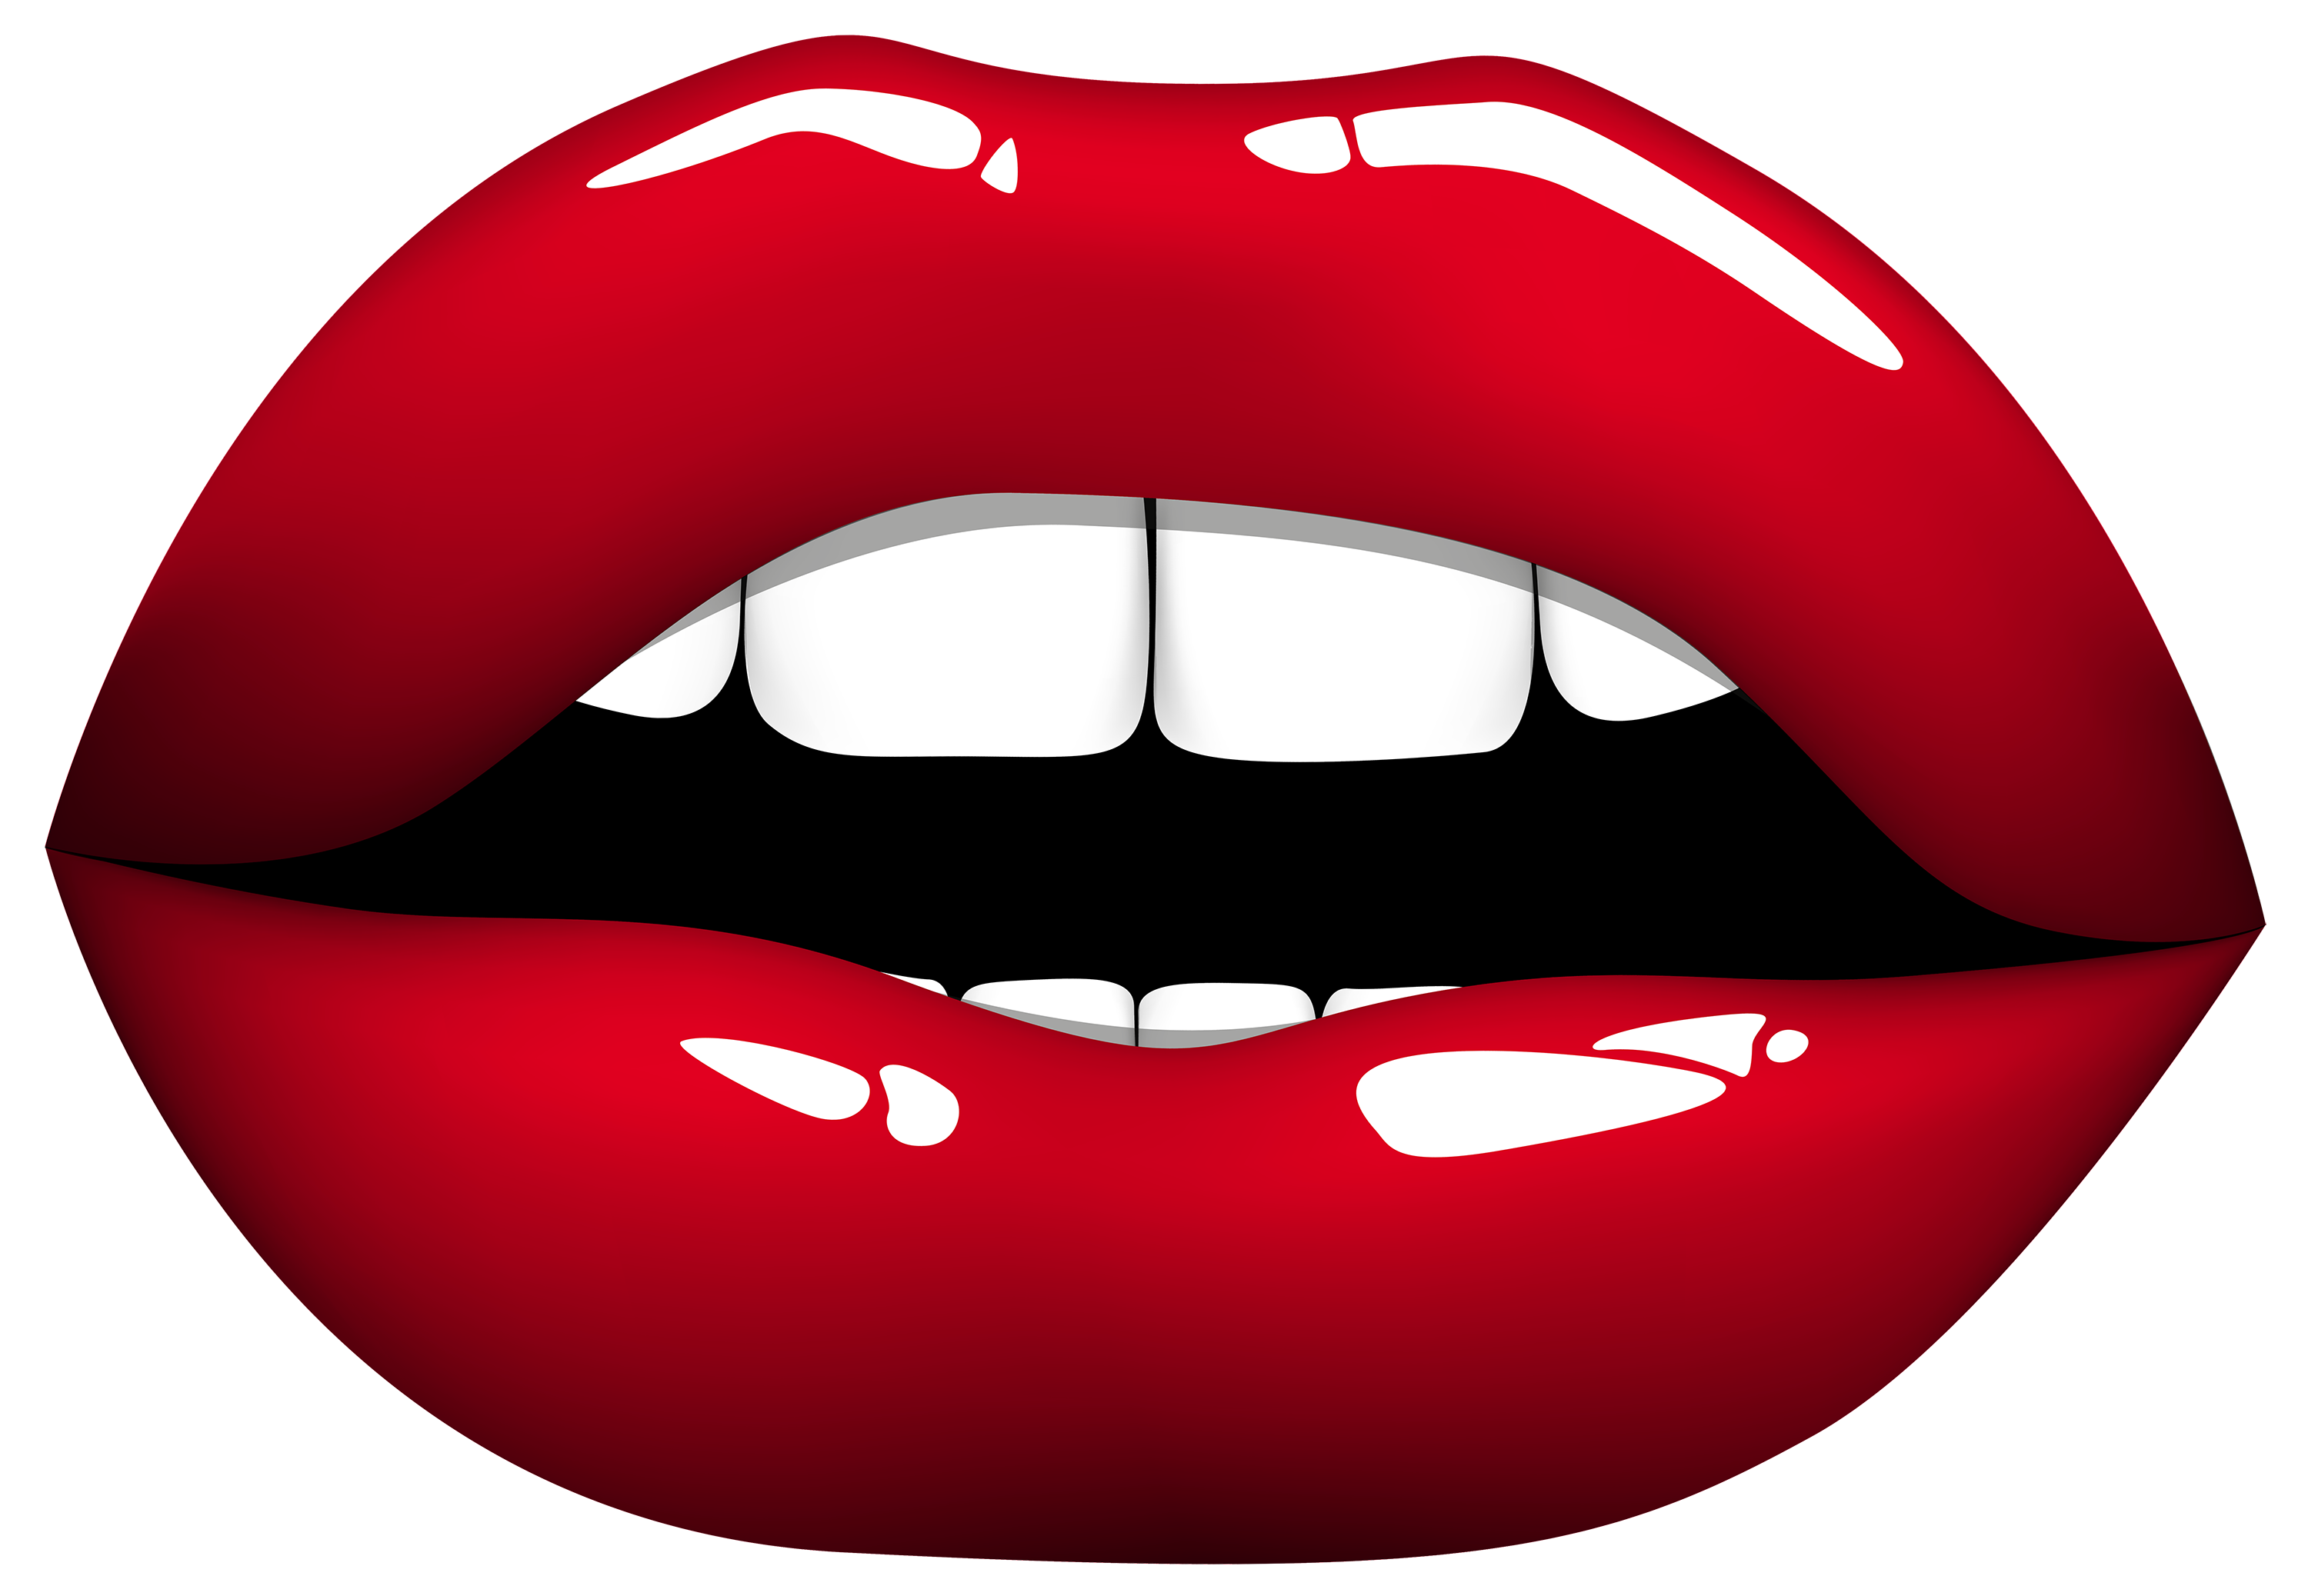 Red png best web. Zipper clipart lips